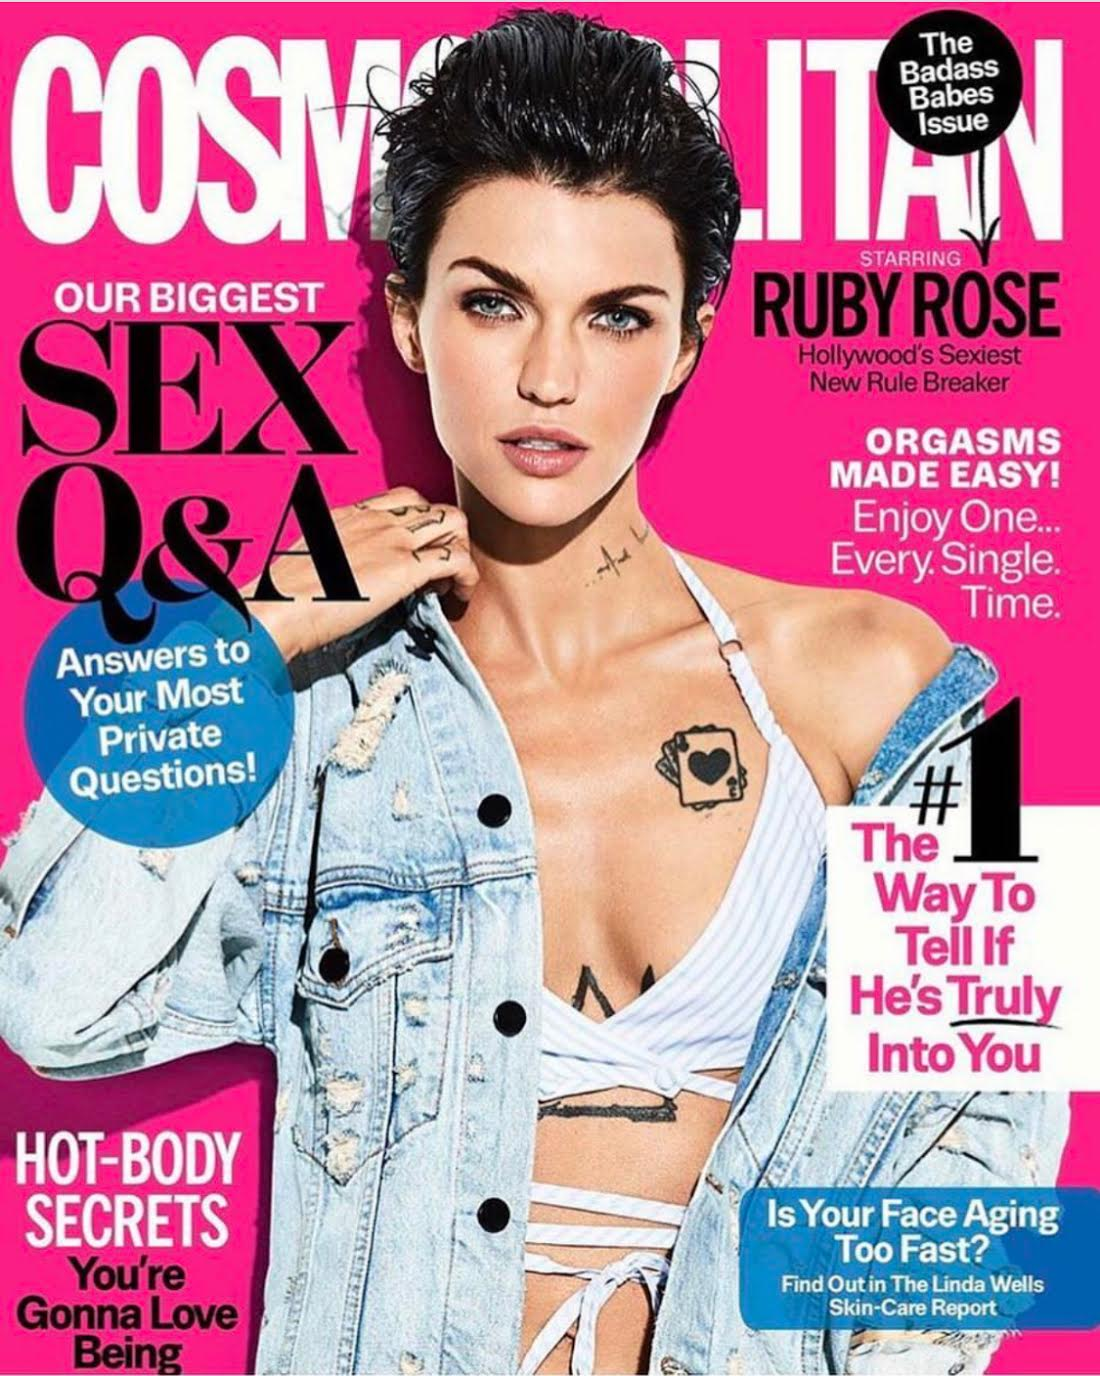 ruby-rose-cosmo-cover.jpg